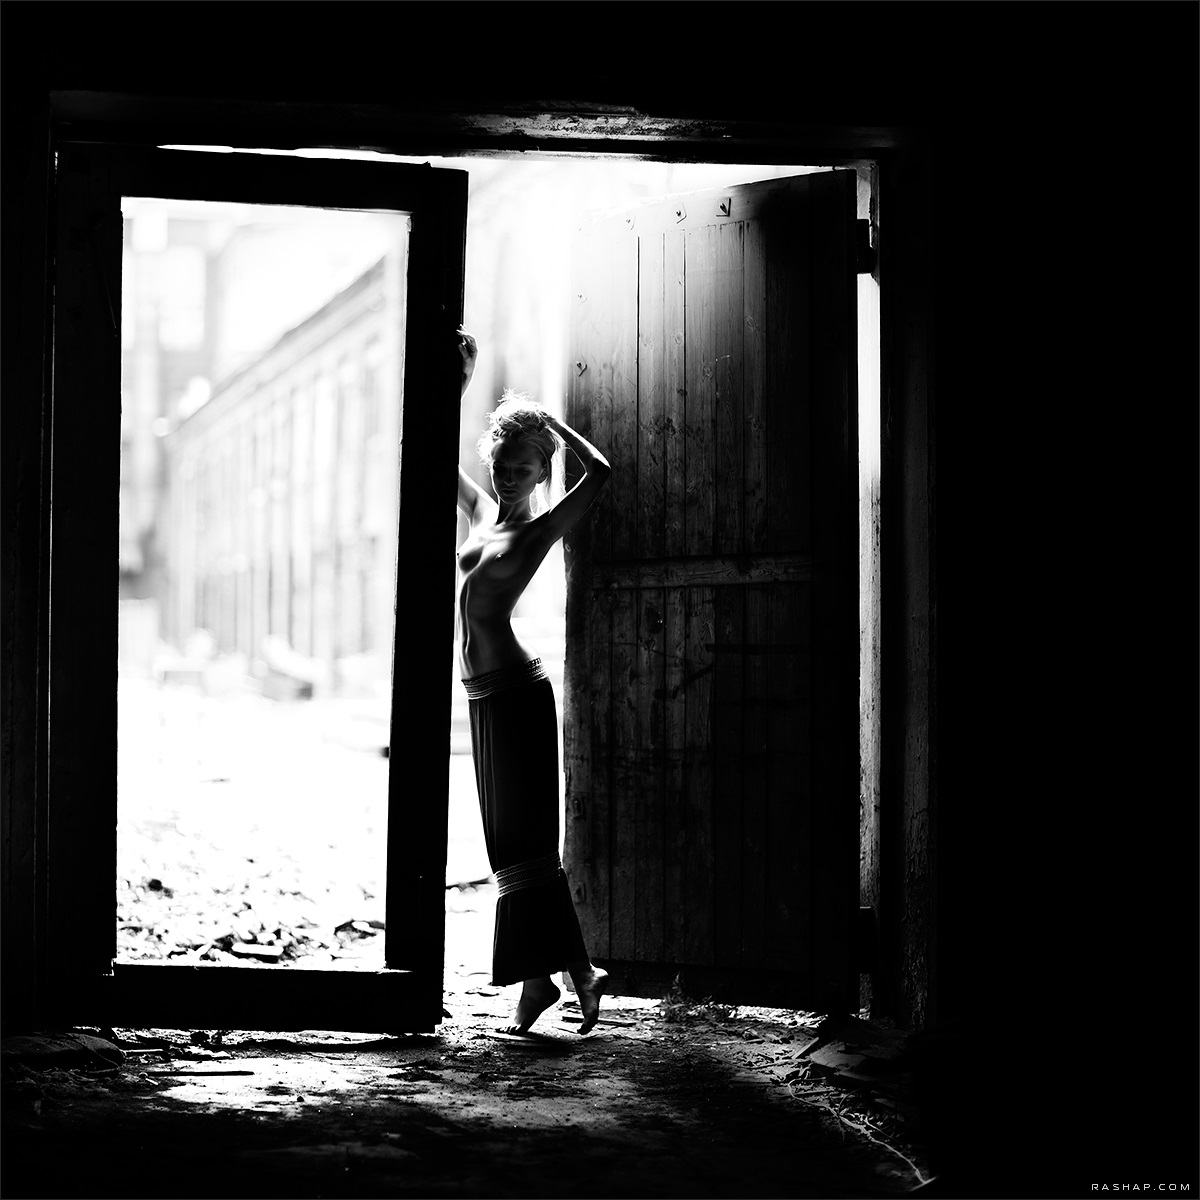 Charming black & white pictures by a photographer Ilya Rashap - 17